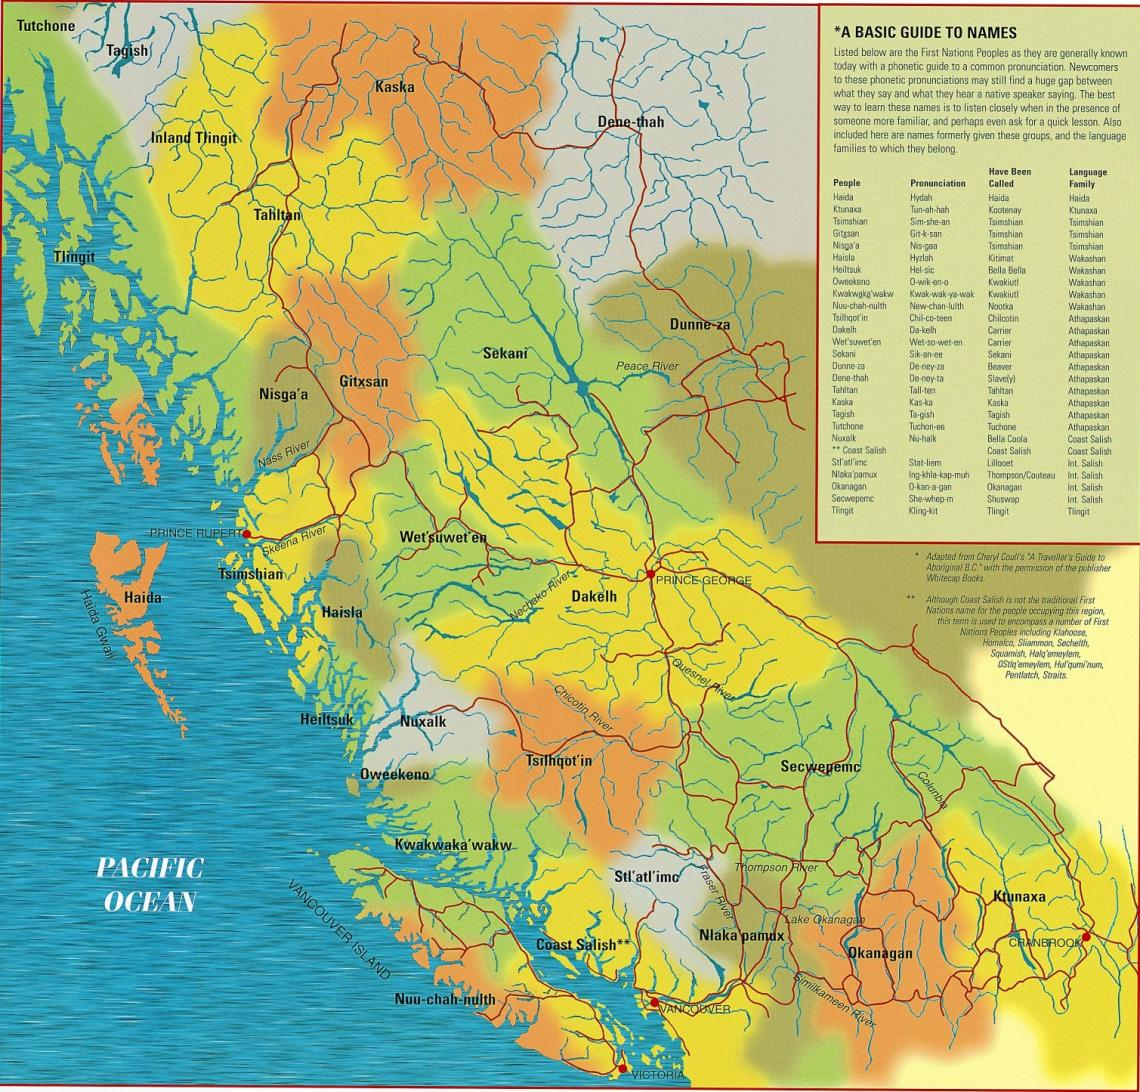 Represents boundaries of the various First Nations across British Columbia. Includes a basic pronunciation guide to names